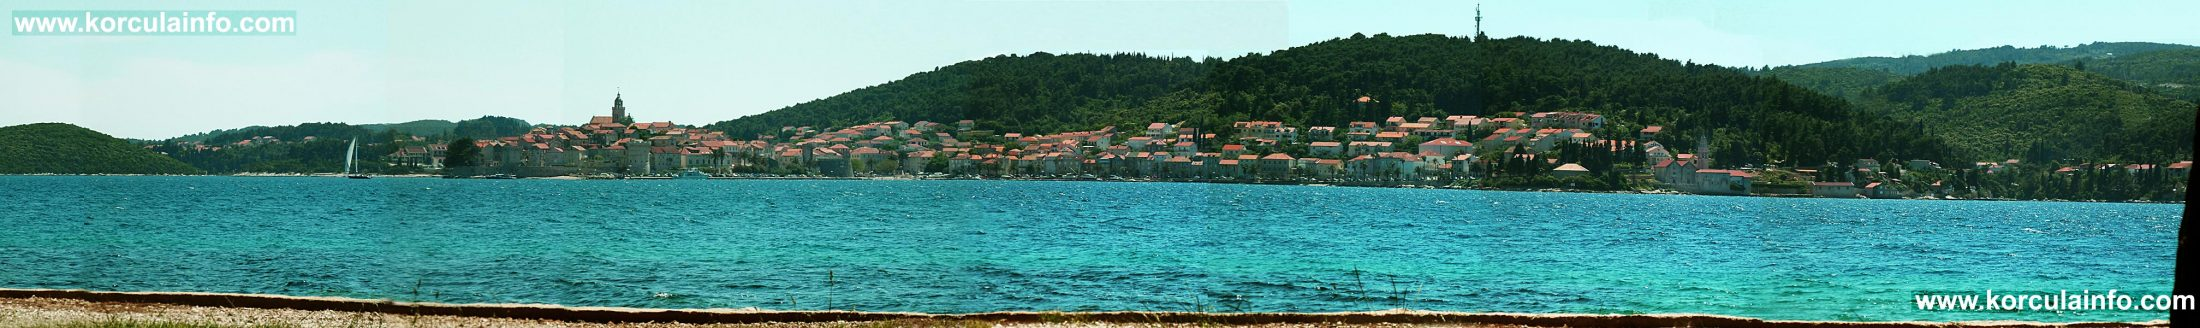 Korcula Old Town and surrounding area viewed from Perna, Peljesac